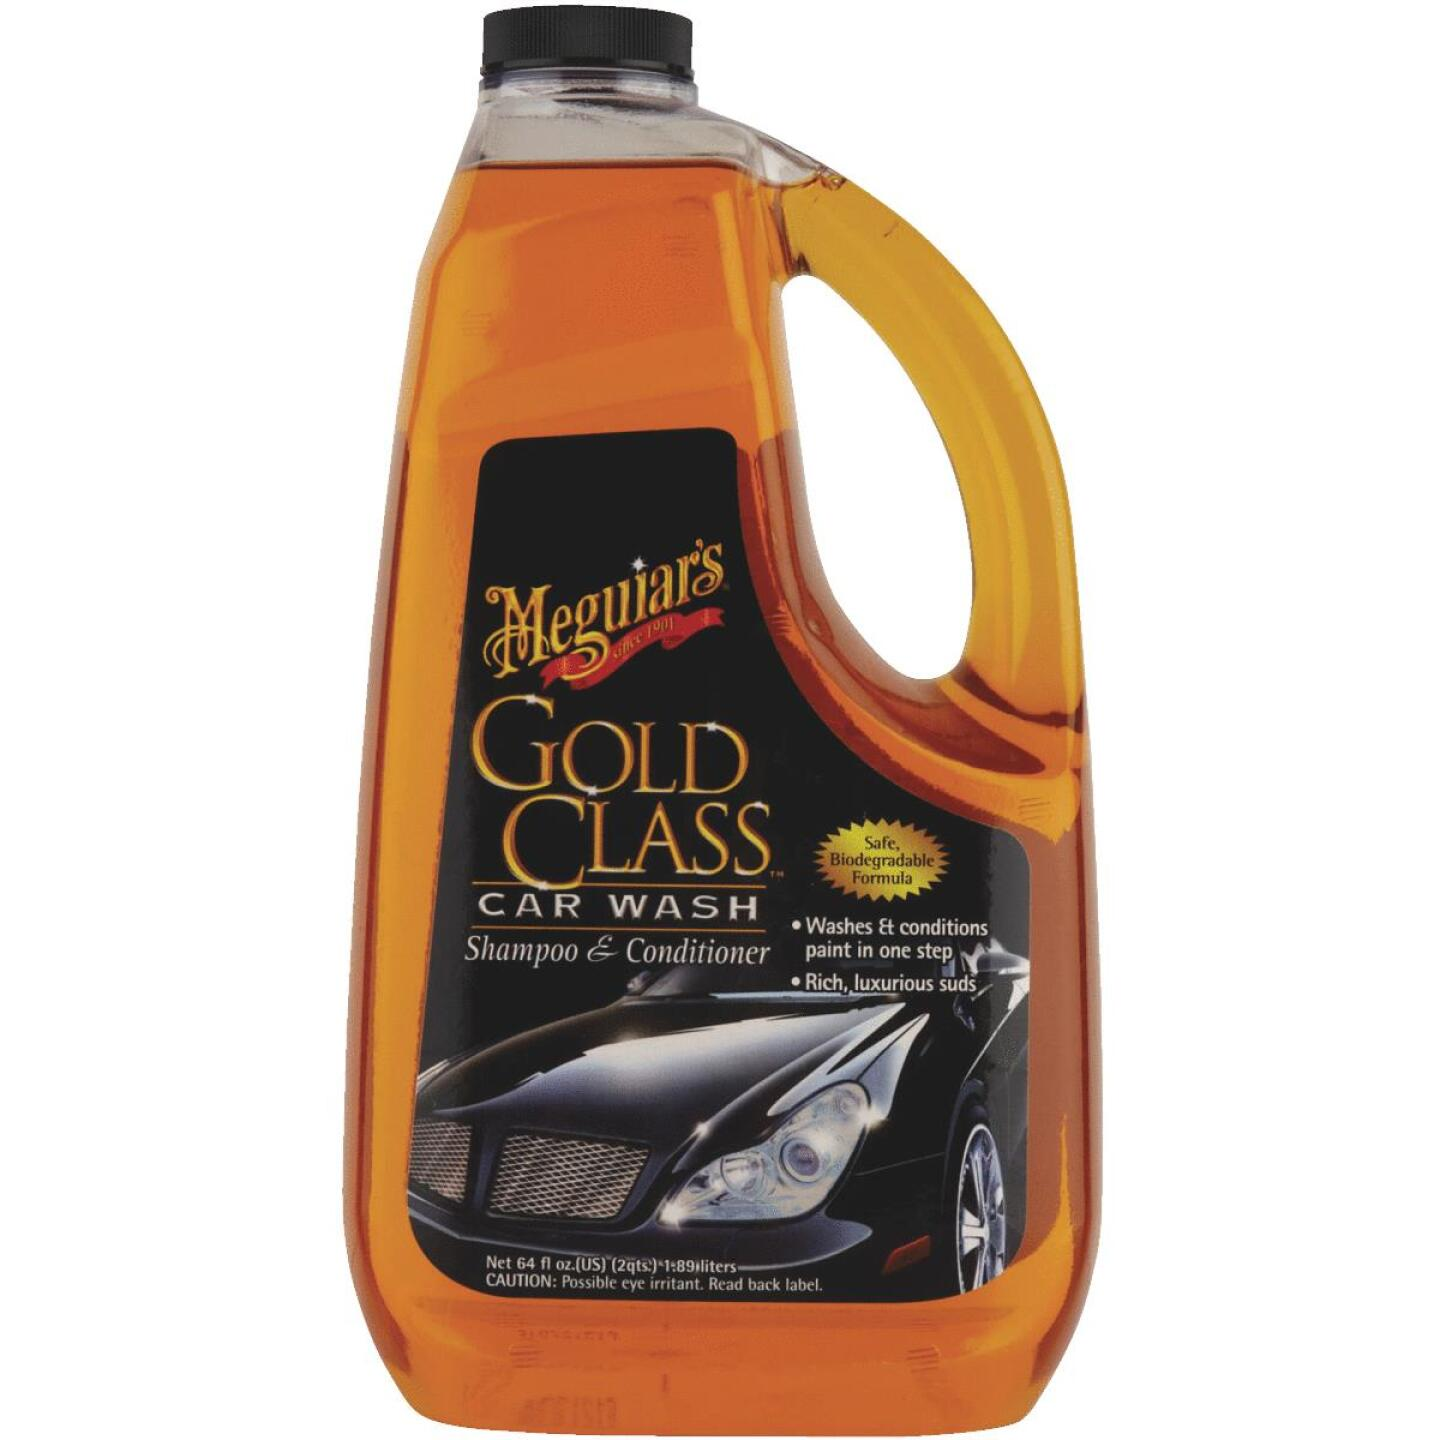 Meguiars Gold Class Liquid 64 oz Car Wash Image 2